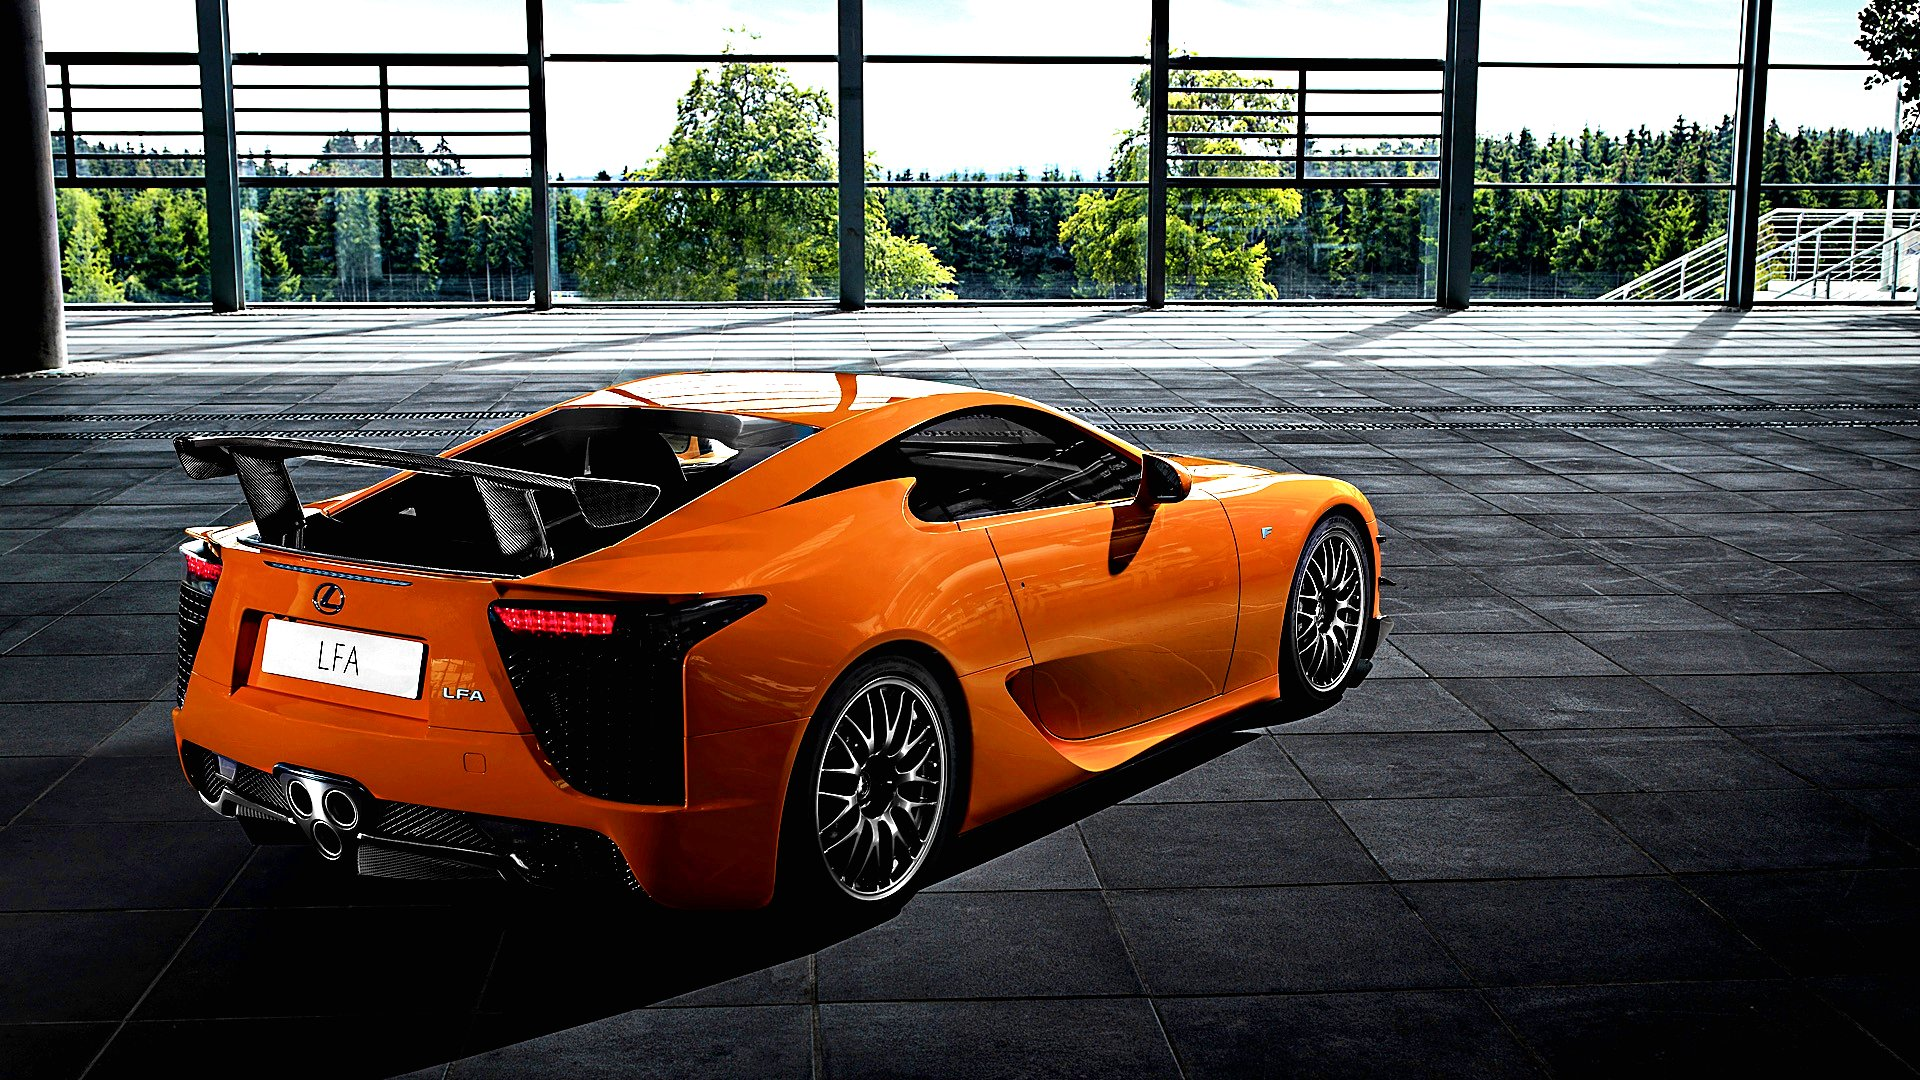 Lexus Lfa Wallpapers Pictures Images